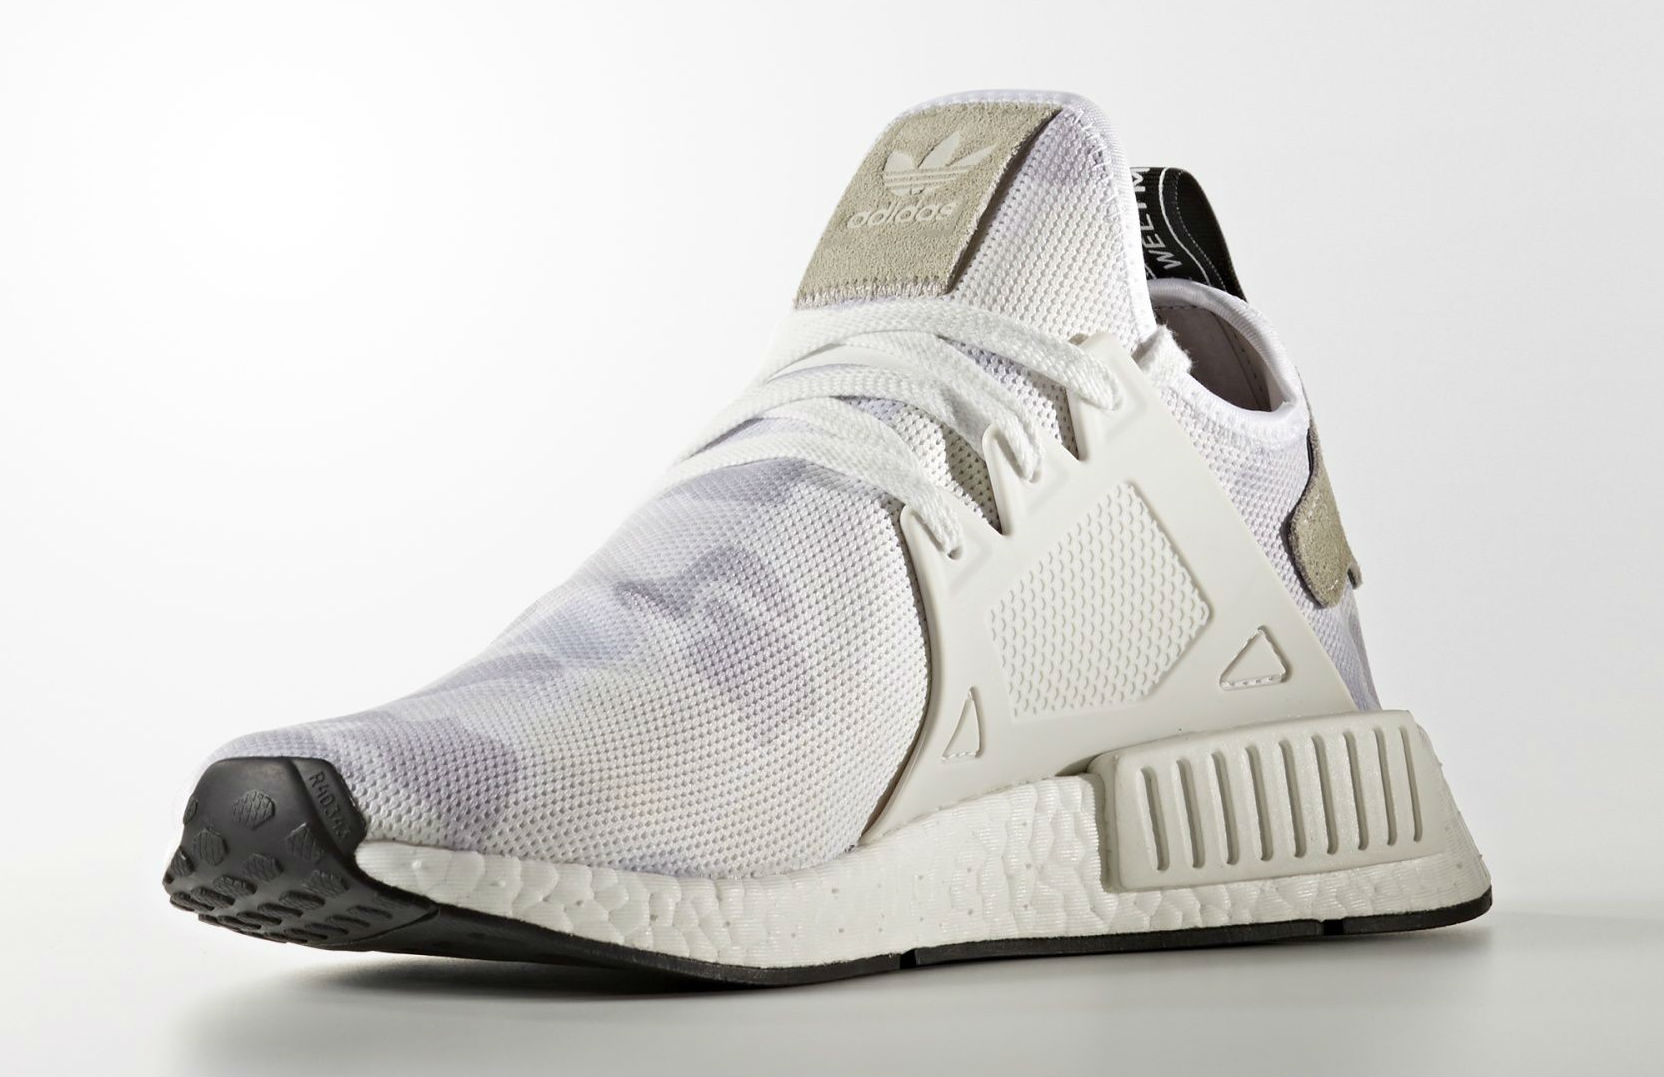 adidas nmd pk white camo what is the name of the new adidas shoes